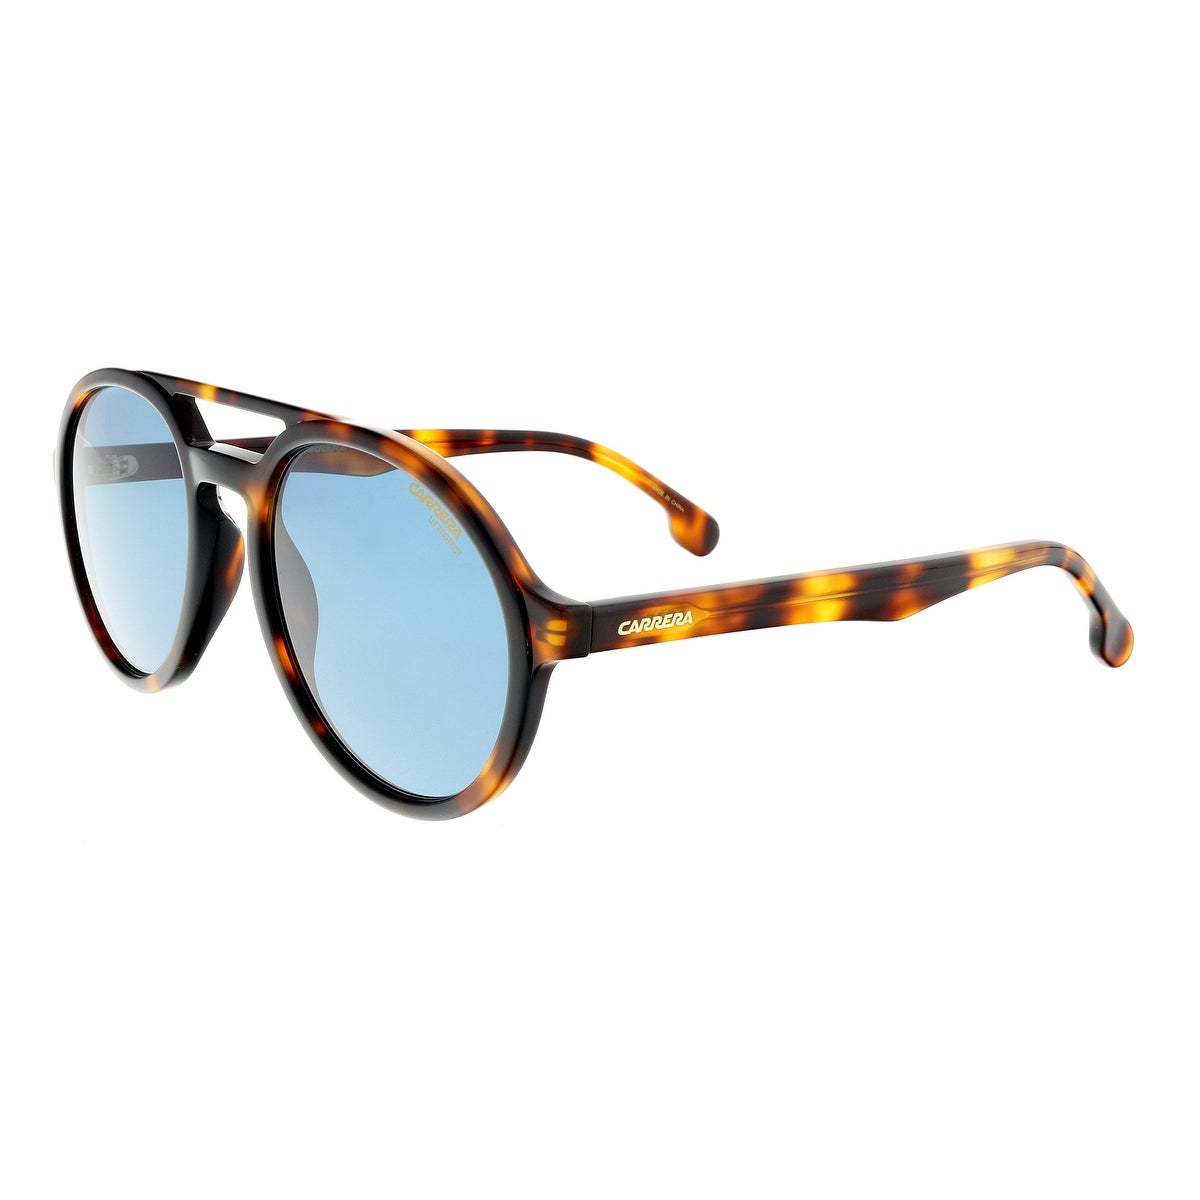 867858be8d Carrera Men's Sunglasses | Find Great Sunglasses Deals Shopping at Overstock